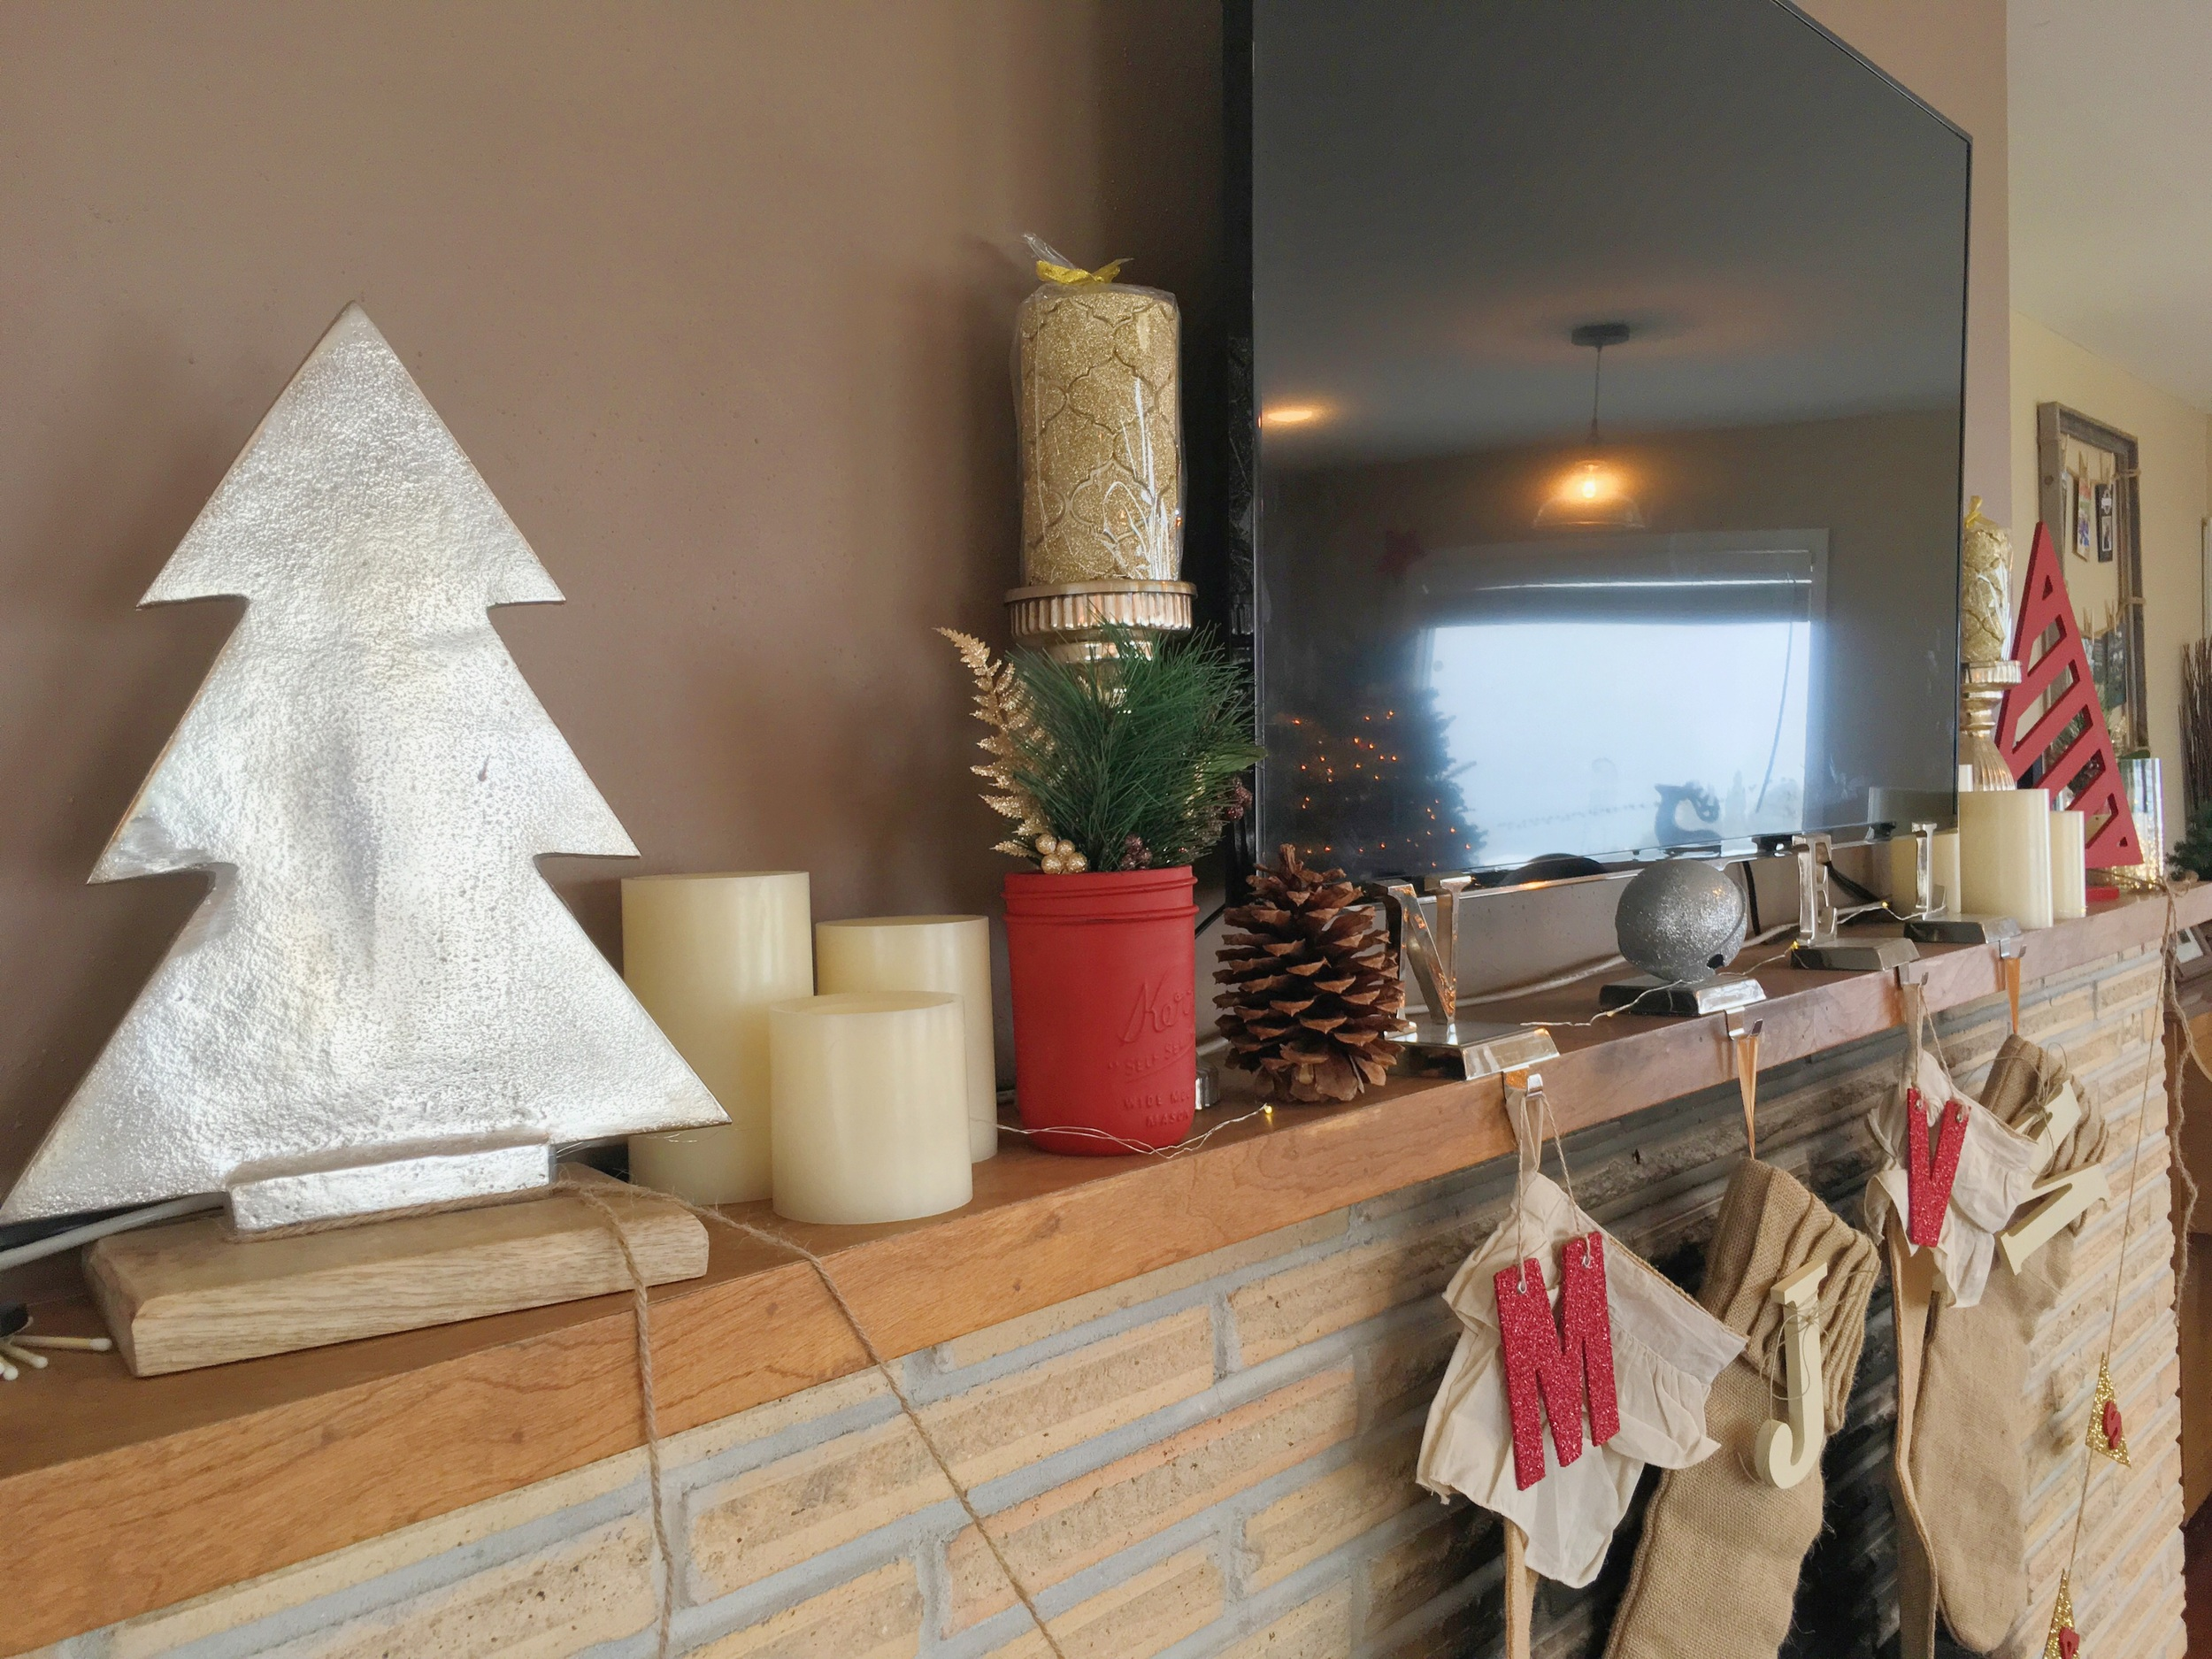 Christmas decor | Holliday | lifestyle blog | Meagan Kludt | the winemakers wife